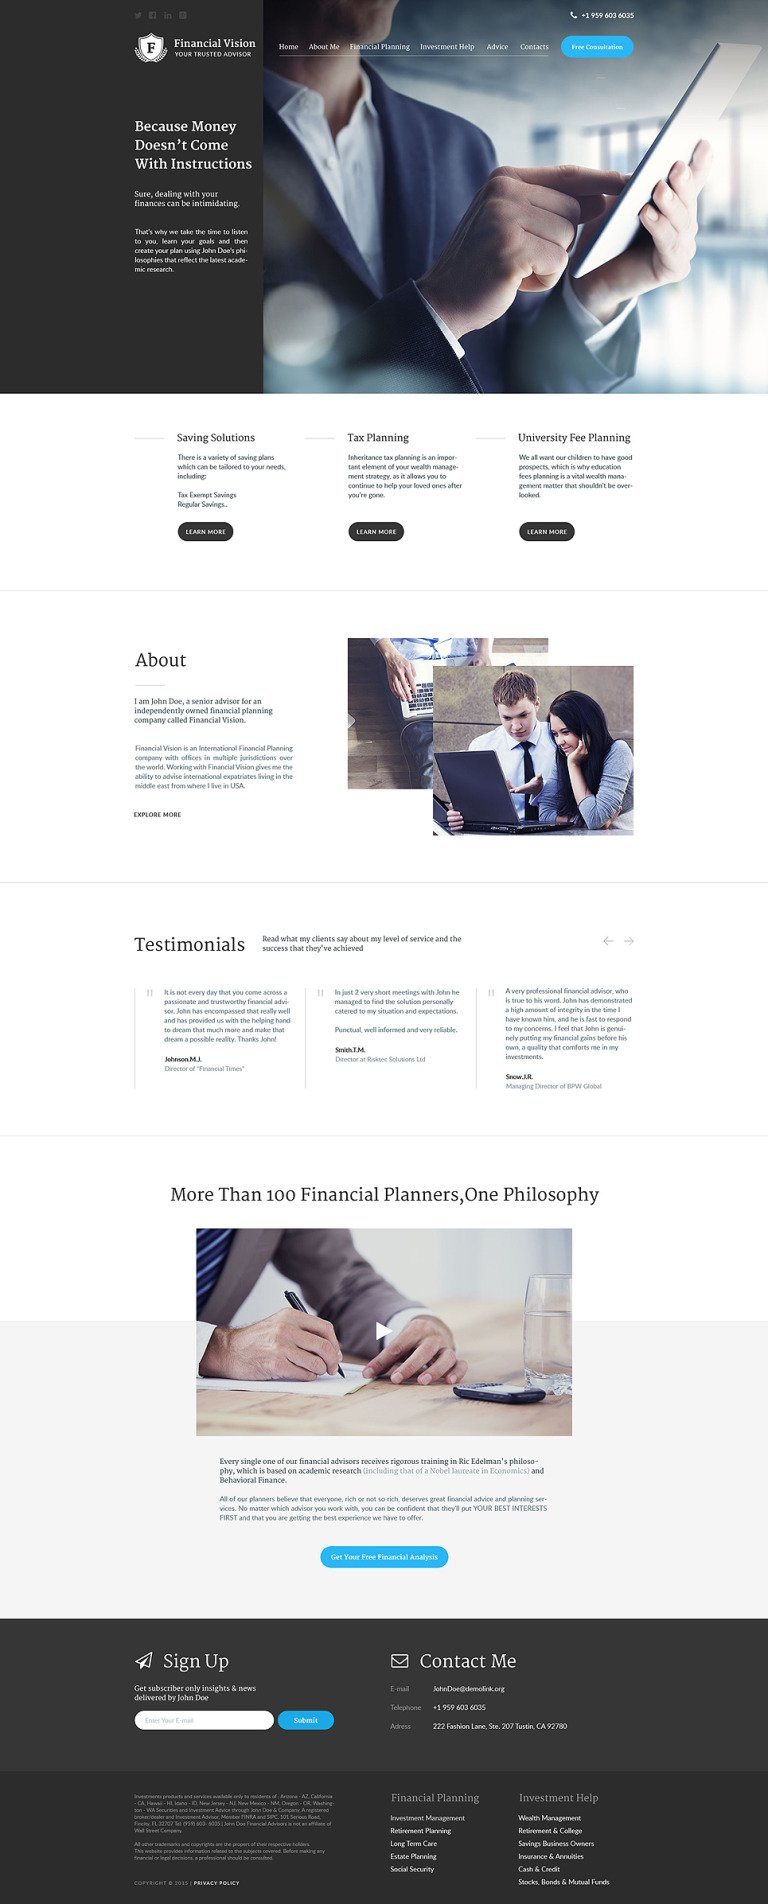 Financial Vision Website Template New Screenshots BIG